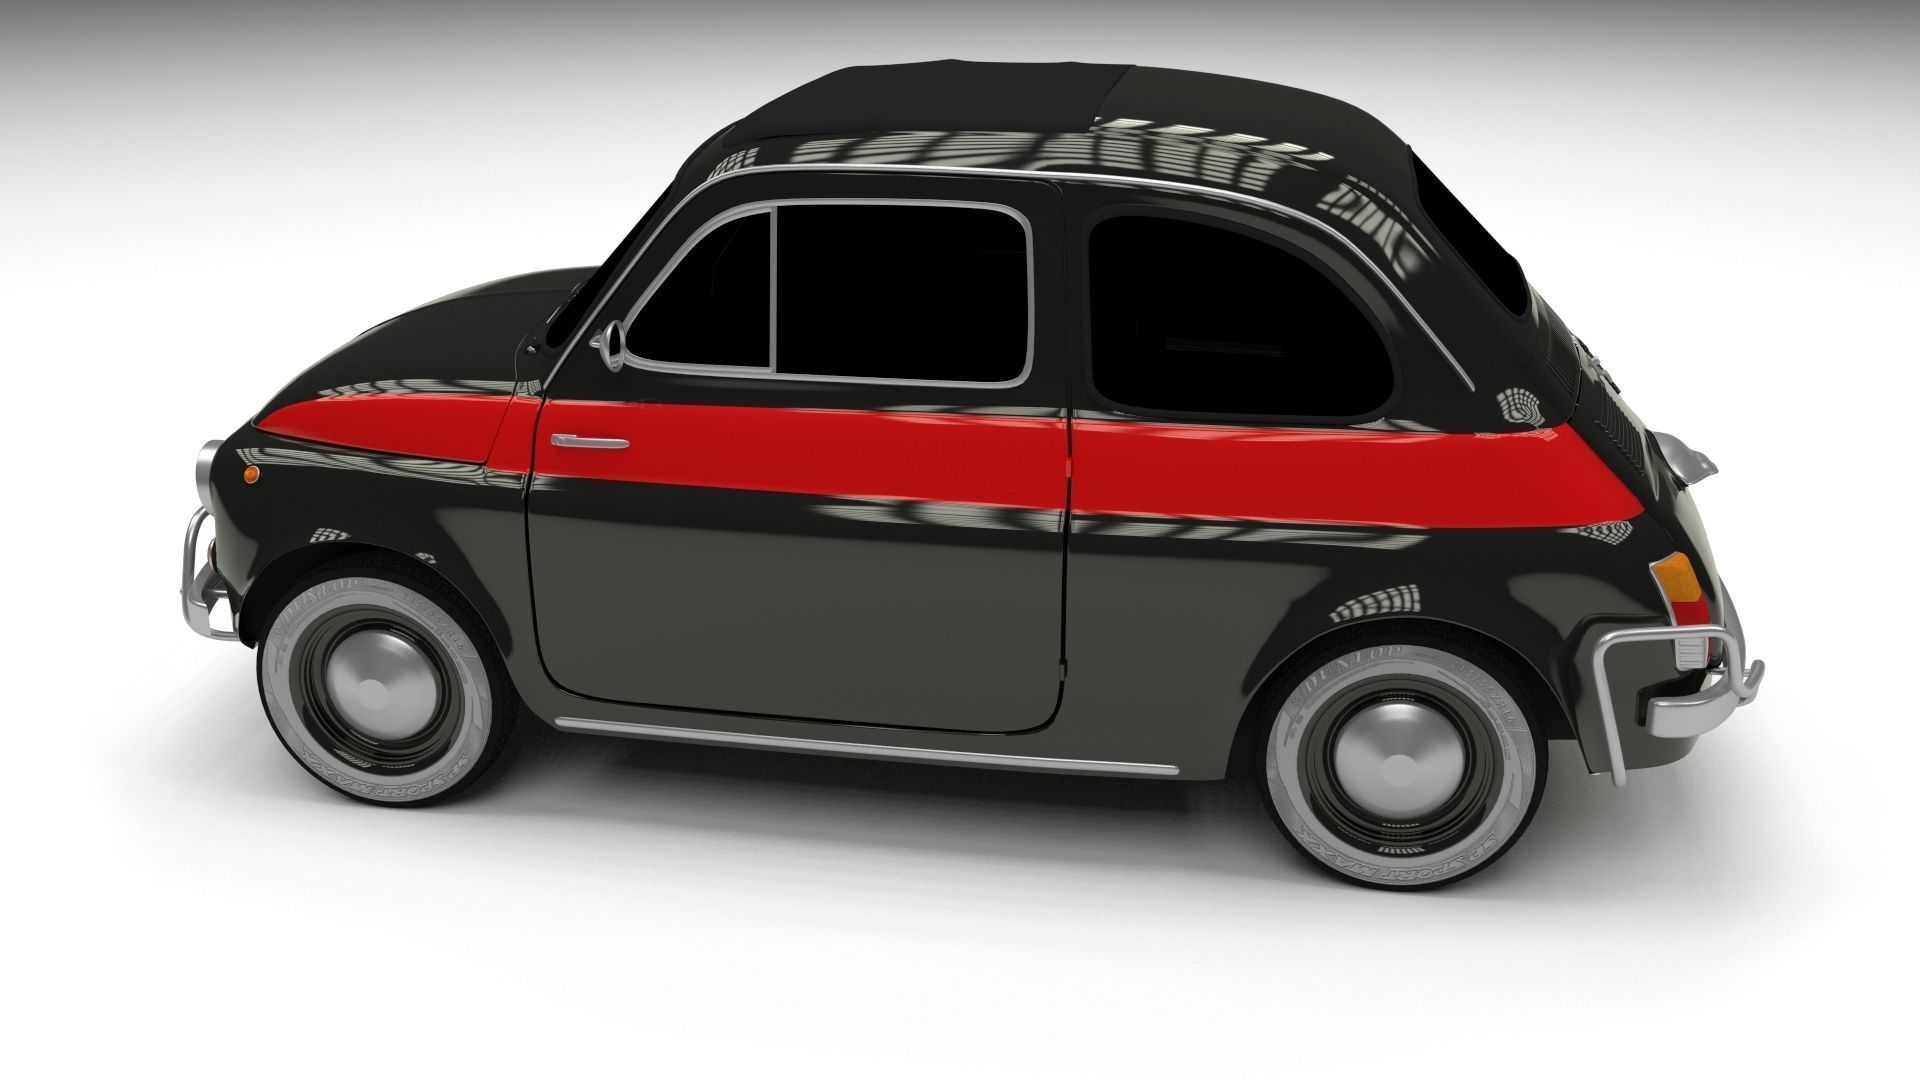 fiat 500 nuova sport 1958 hdri 3d model obj fbx stl blend dae. Black Bedroom Furniture Sets. Home Design Ideas